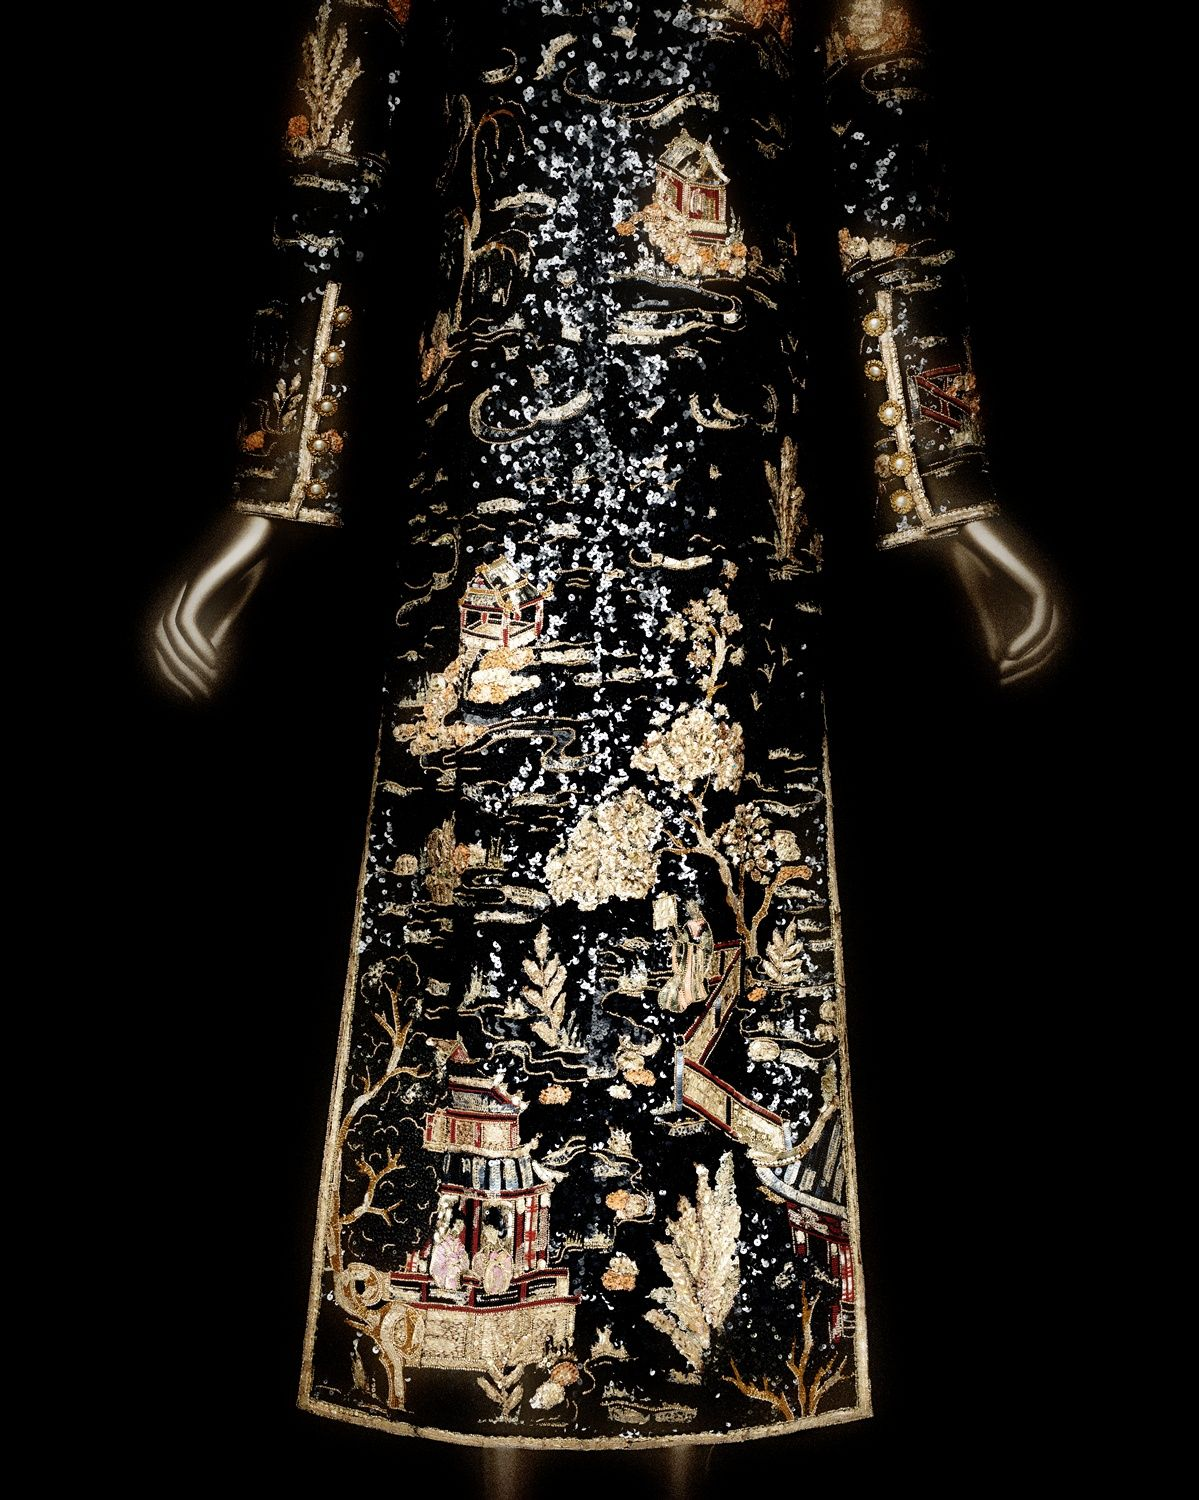 House of CHANEL (French, founded 1913). Karl Lagerfeld (French, born Hamburg, 1938). House of Lesage (French, founded 1922). Evening coat, autumn/winter 1996–97 haute couture. Black silk organza and satin embroidered with black, gold, and coral plastic sequins, and gold beads. Courtesy of Collection CHANEL, Paris | Photography © Platon #ChinaLookingGlass #AsianArt100